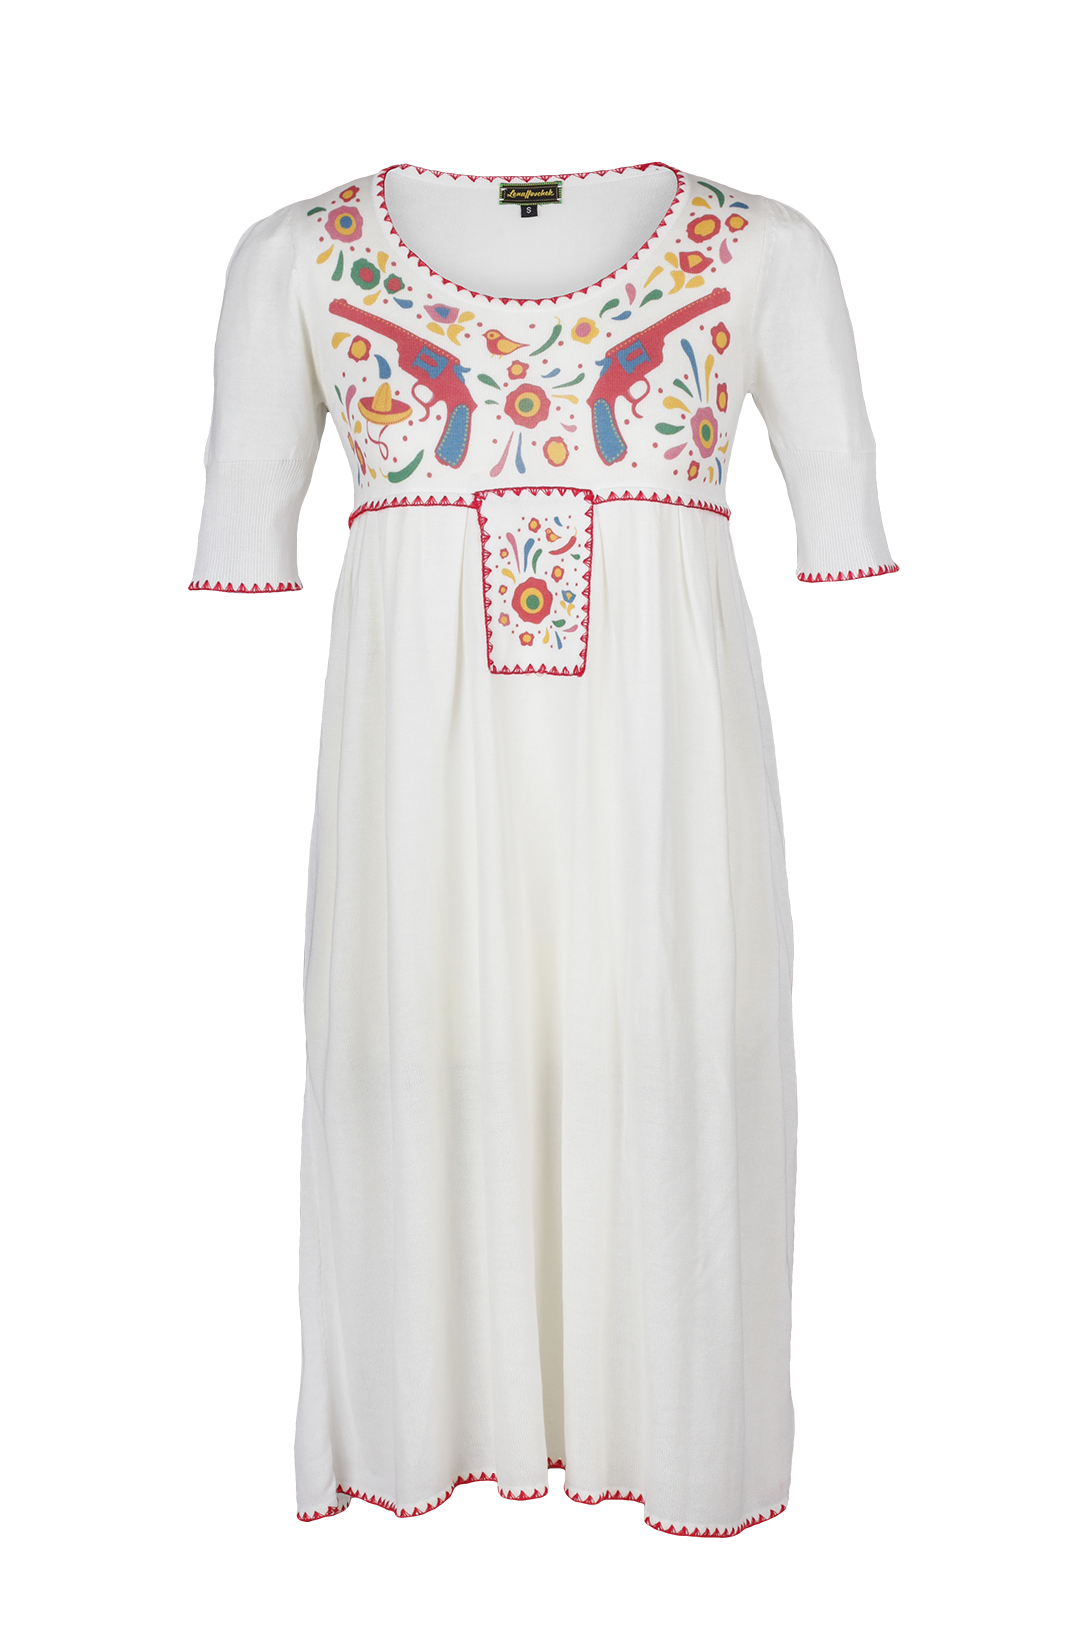 Lena Dress Mexican Style Gorgeous HoschekFolklore Kleidung Edgy VpSUzM